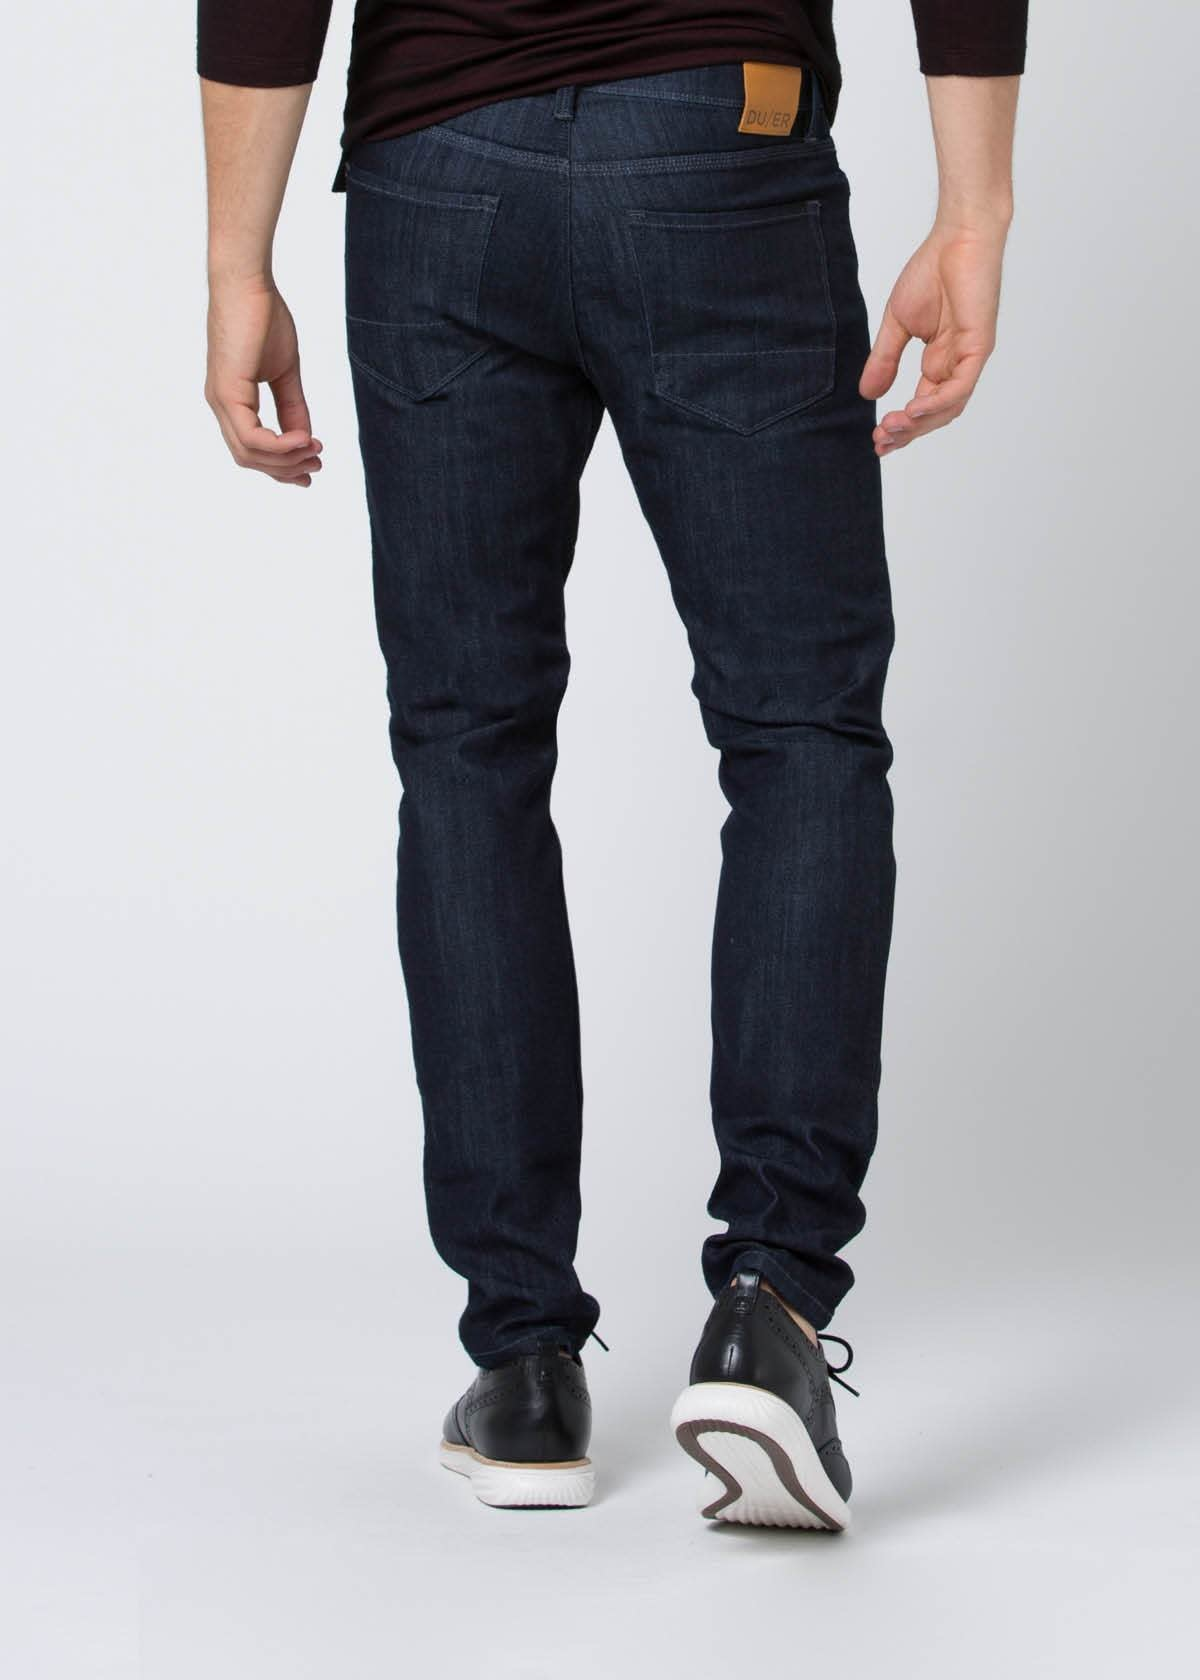 DUER Performance Denim Slim-5